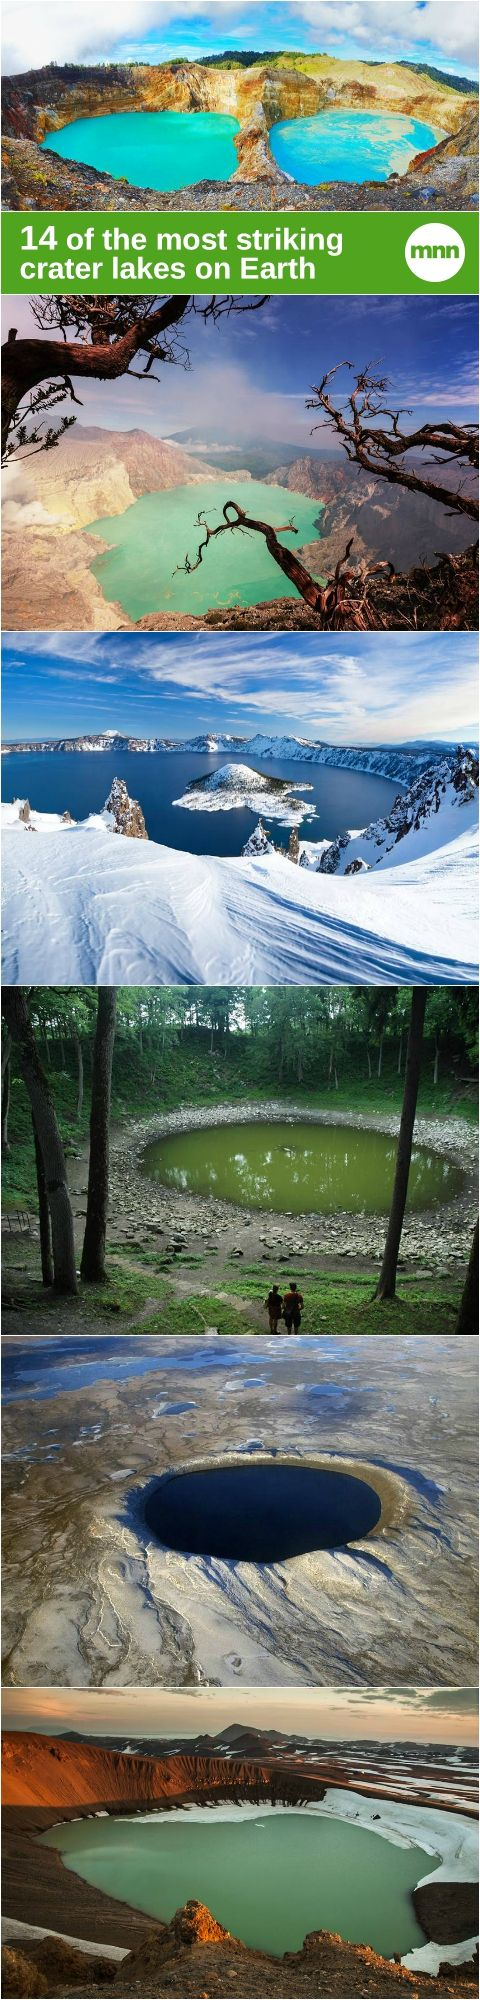 3 Indonesia's lake crater are mentioned in here and we have alot in here, while the biggest one and the biggest in the world is in my country not mentioned.